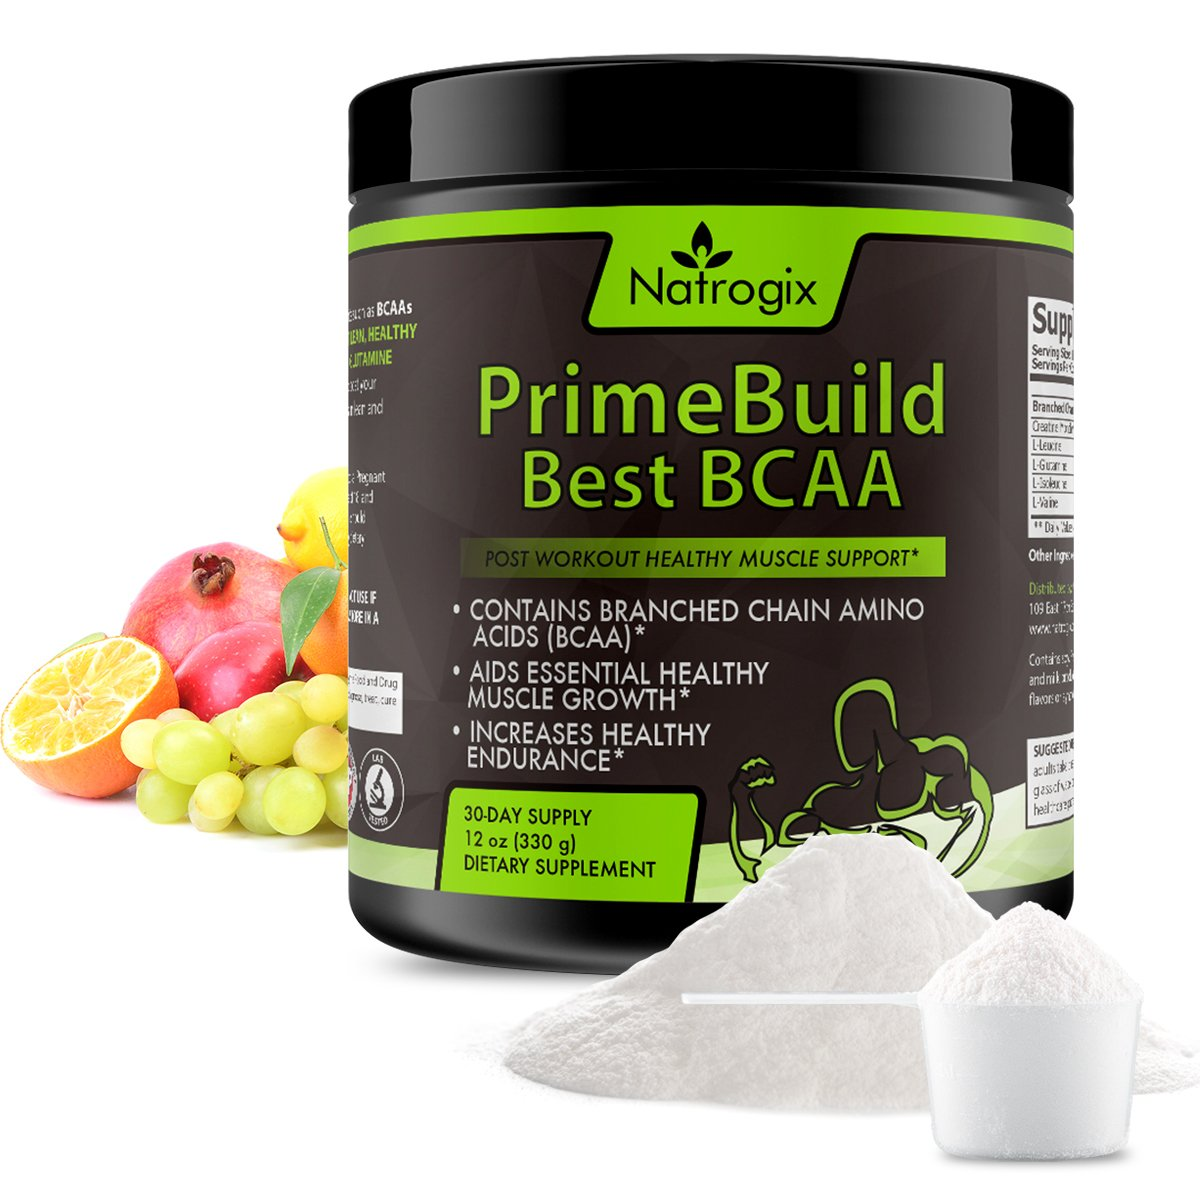 330g (12oz) 3-In-1 Post Workout 7G BCAA Powder by Natrogix, 3G Creatine and a 2:1:1 ratio of Branched Chain Aminos for Muscle Growth, Faster Recovery and Prevent Muscle Soreness. Great Taste. Low Carb